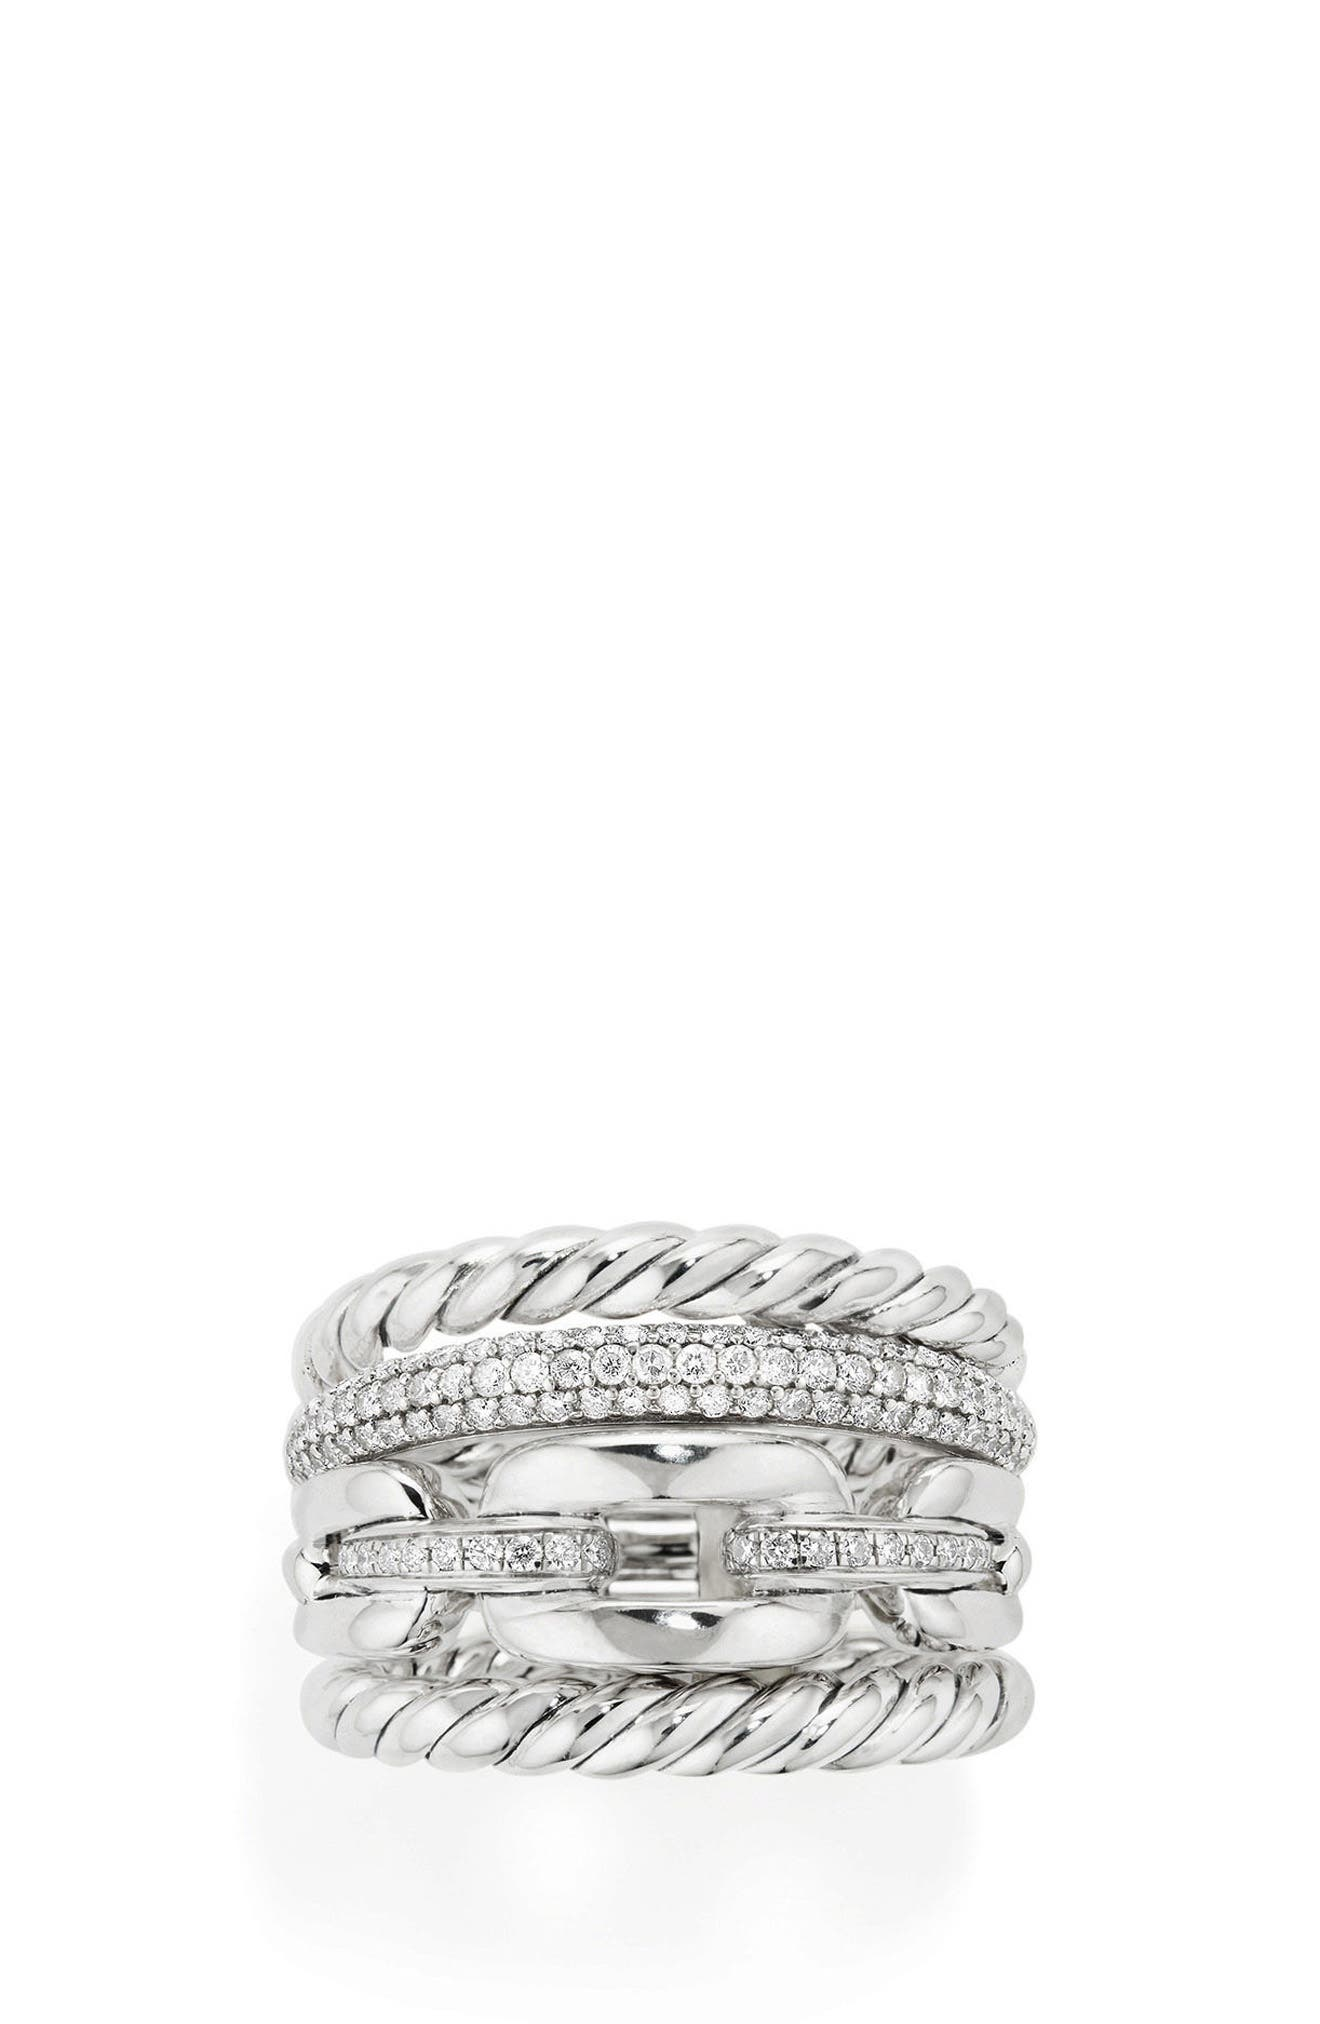 Wellesley Four-Row Ring with Diamonds,                             Alternate thumbnail 2, color,                             Silver